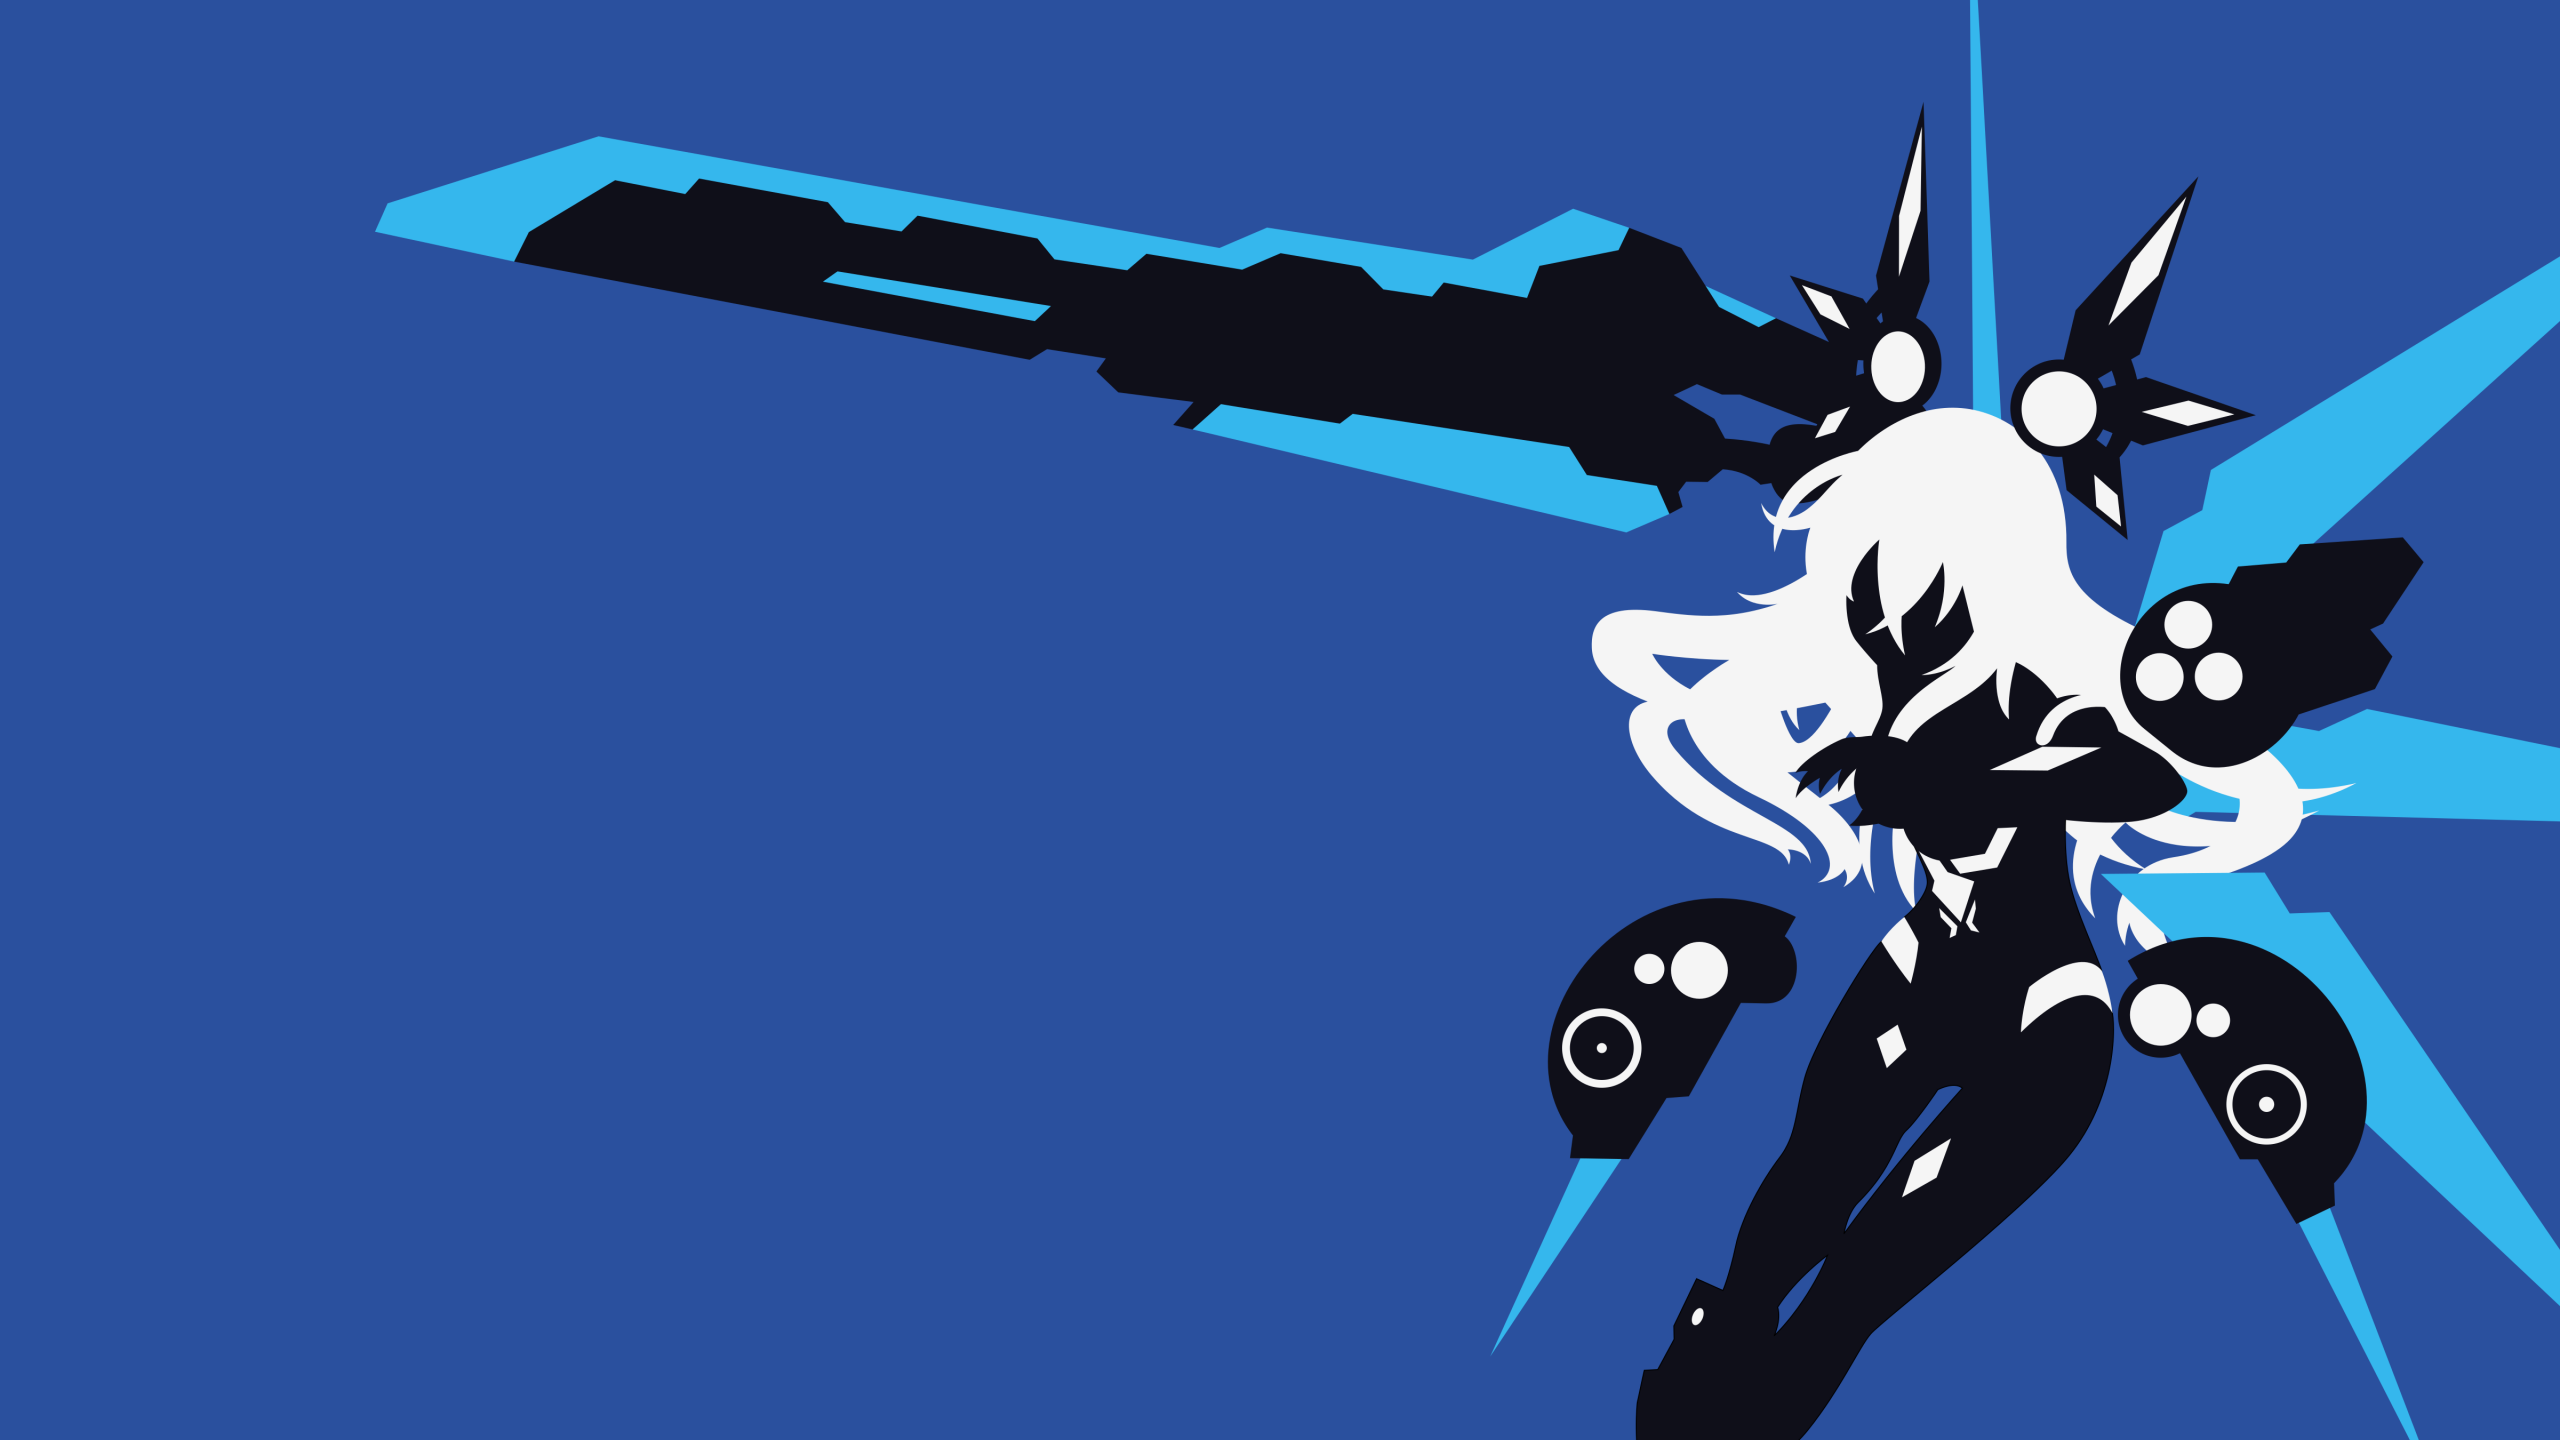 Hyperdimension Neptunia Black Heart Wallpaper By Carionto On